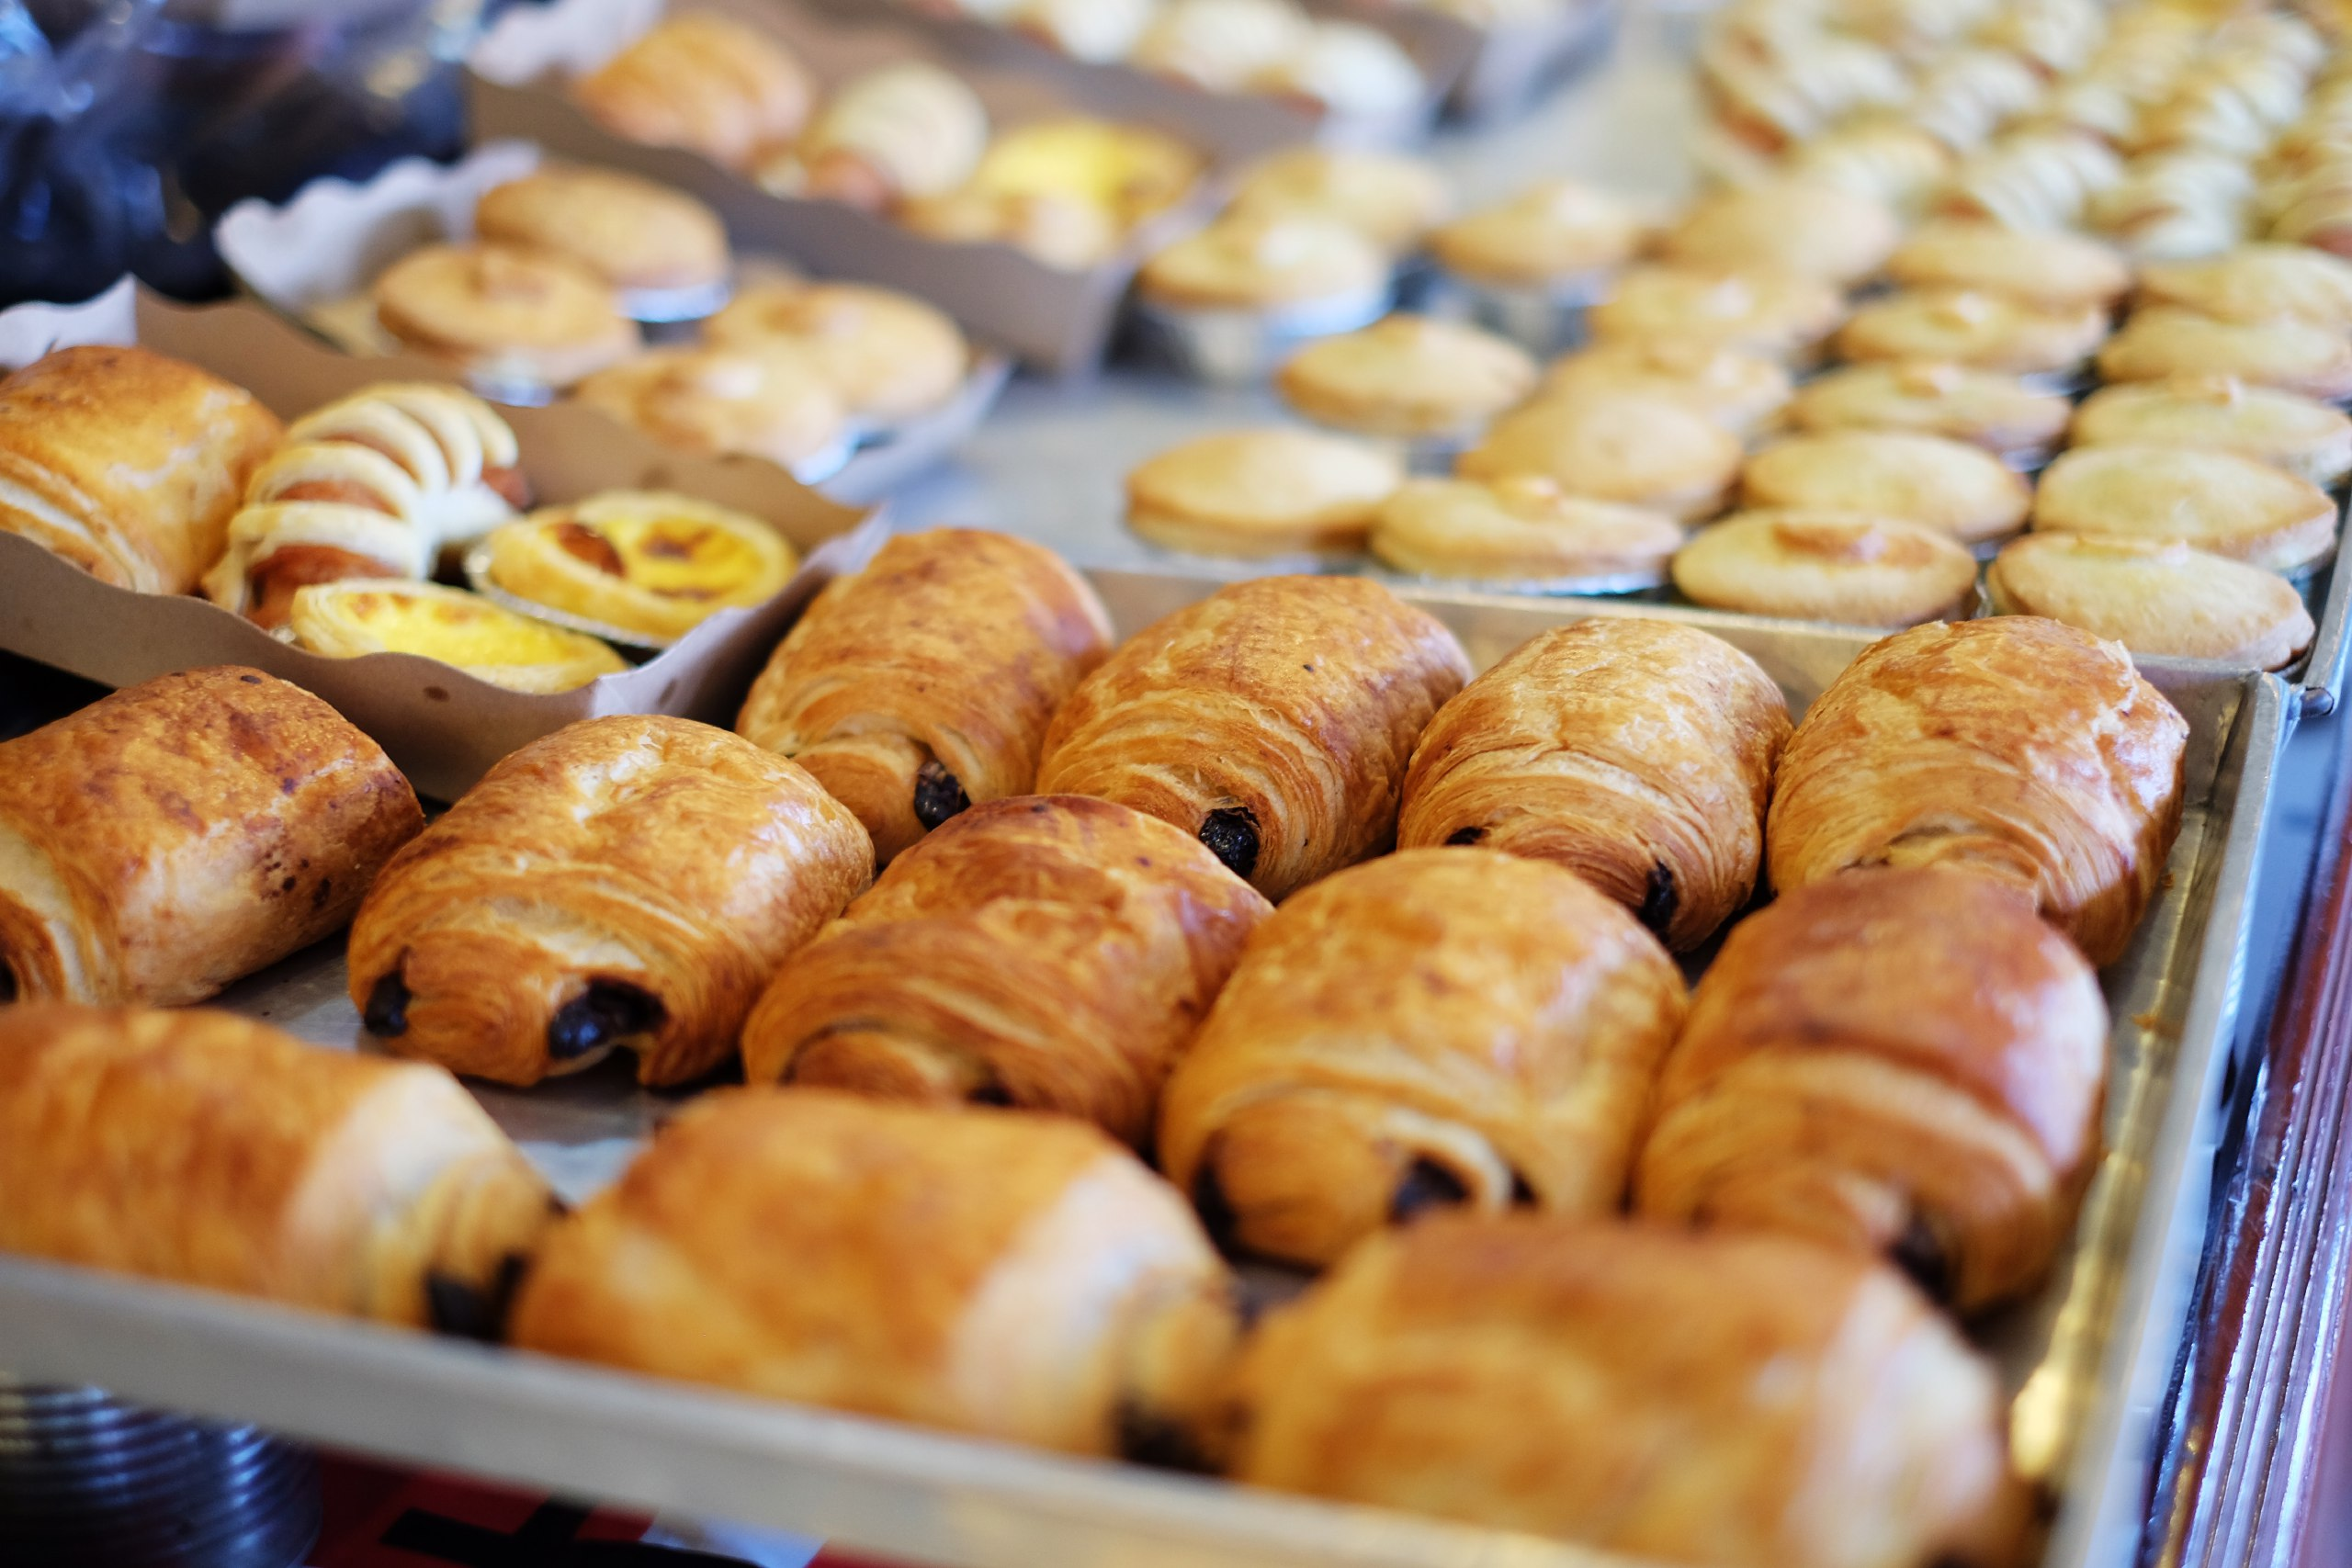 Bakery pipeline. Photo by Mink Mingle on Unsplash